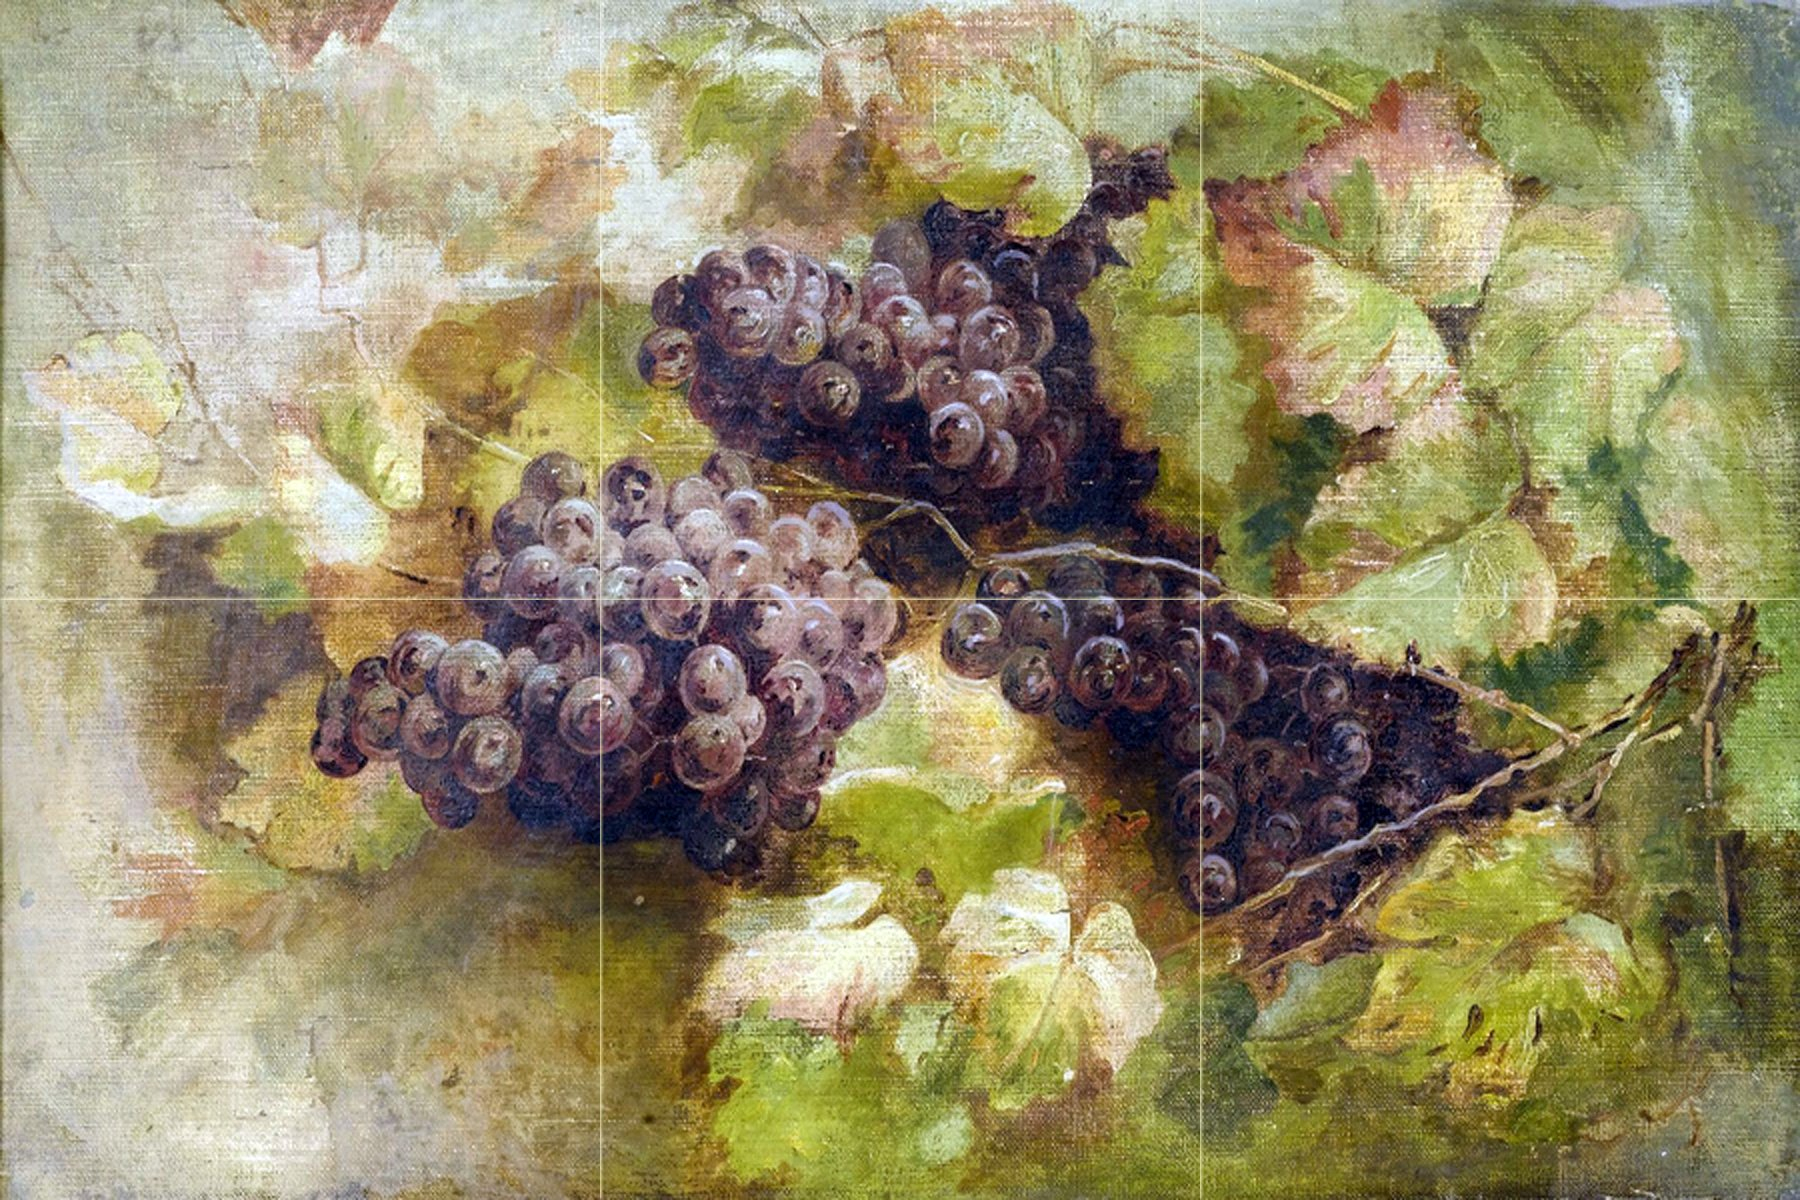 Vine fruits pattern grapes by Giovanni Segantini Tile Mural Kitchen Bathroom Wall Backsplash Behind Stove Range Sink Splashback 3x2 8'' Ceramic, Matte